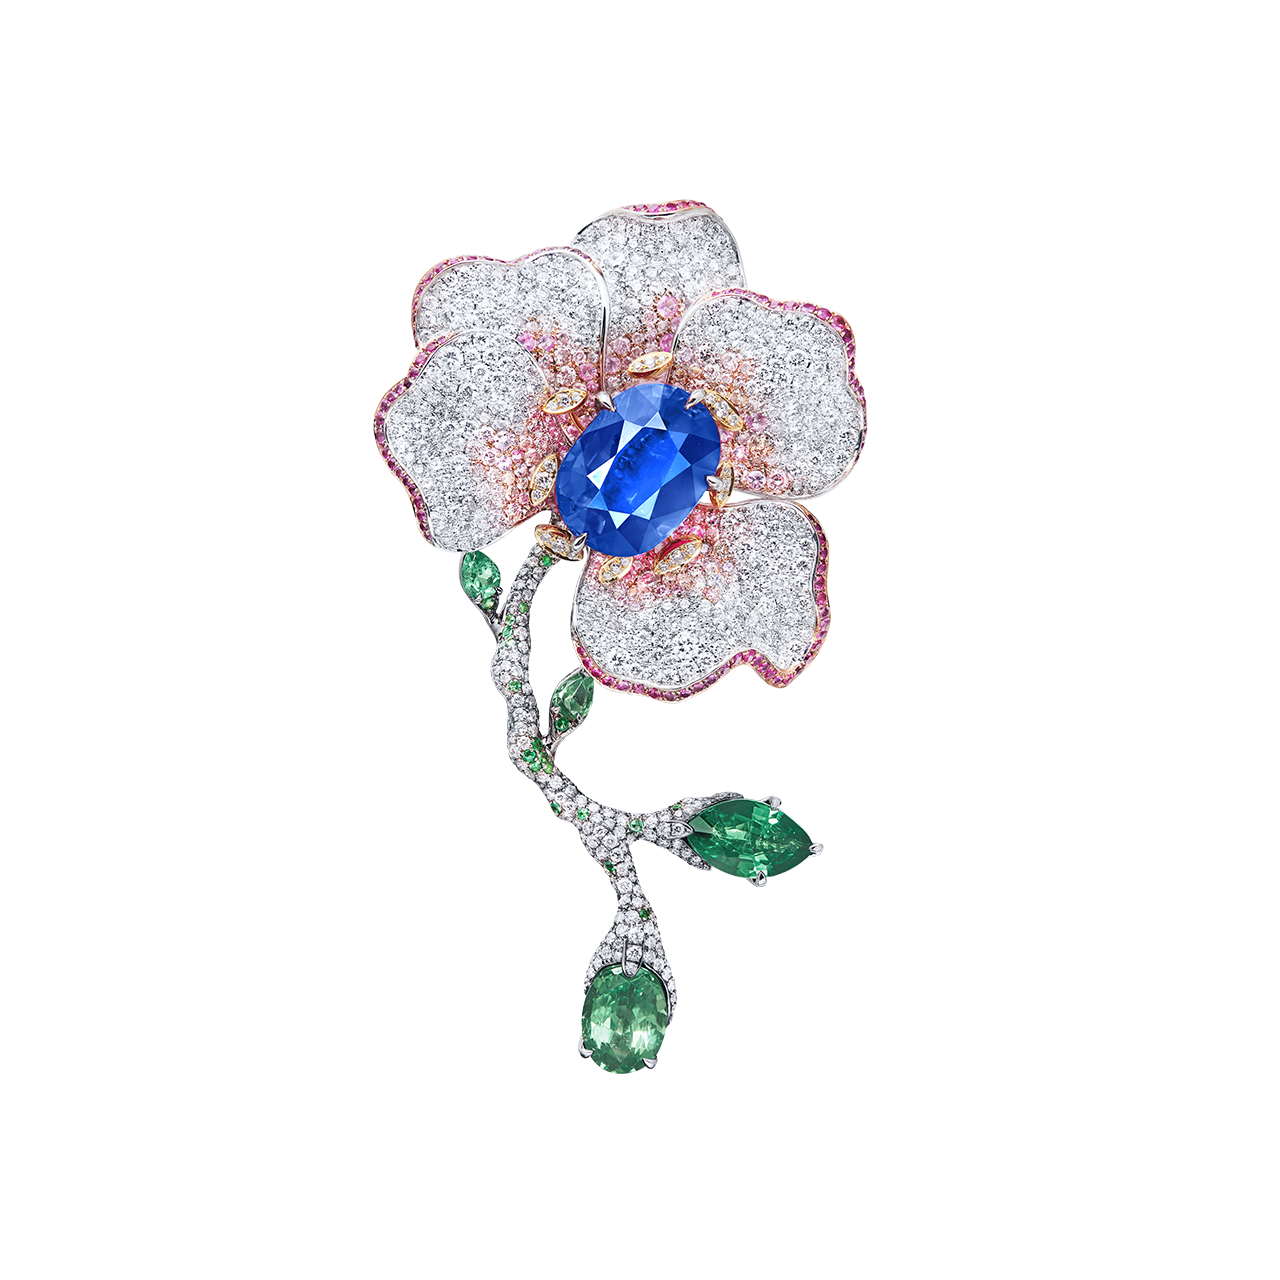 斯里蘭卡皇家藍藍寶鑽石胸針 8.09克拉